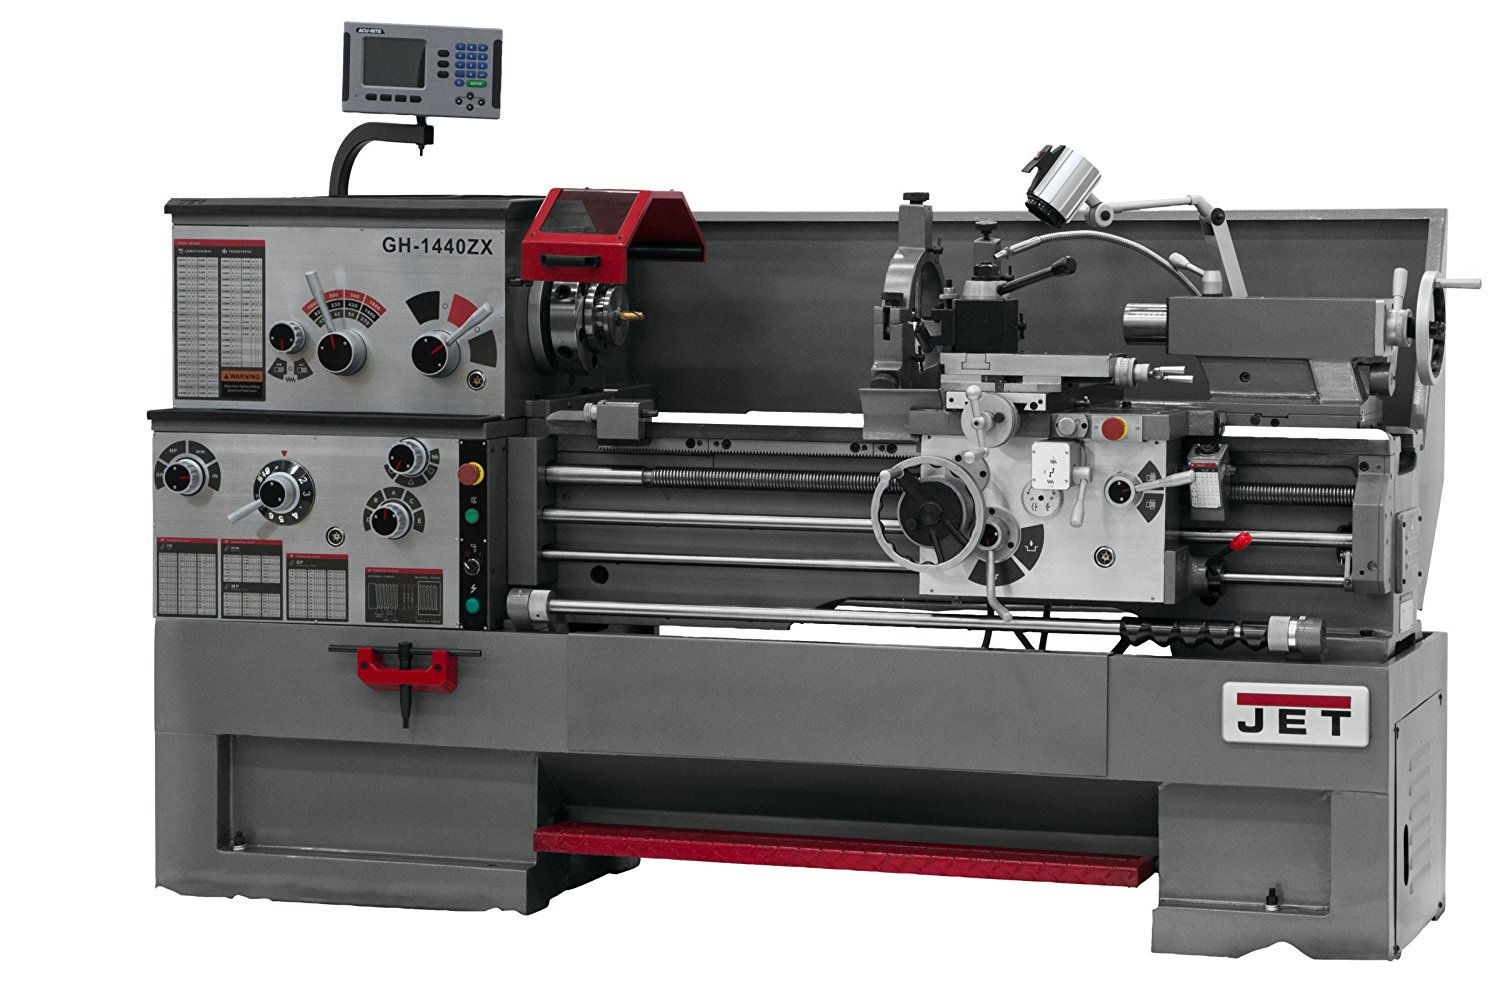 JET GH-1440ZX Lathe with 300S DRO and Taper Attachment